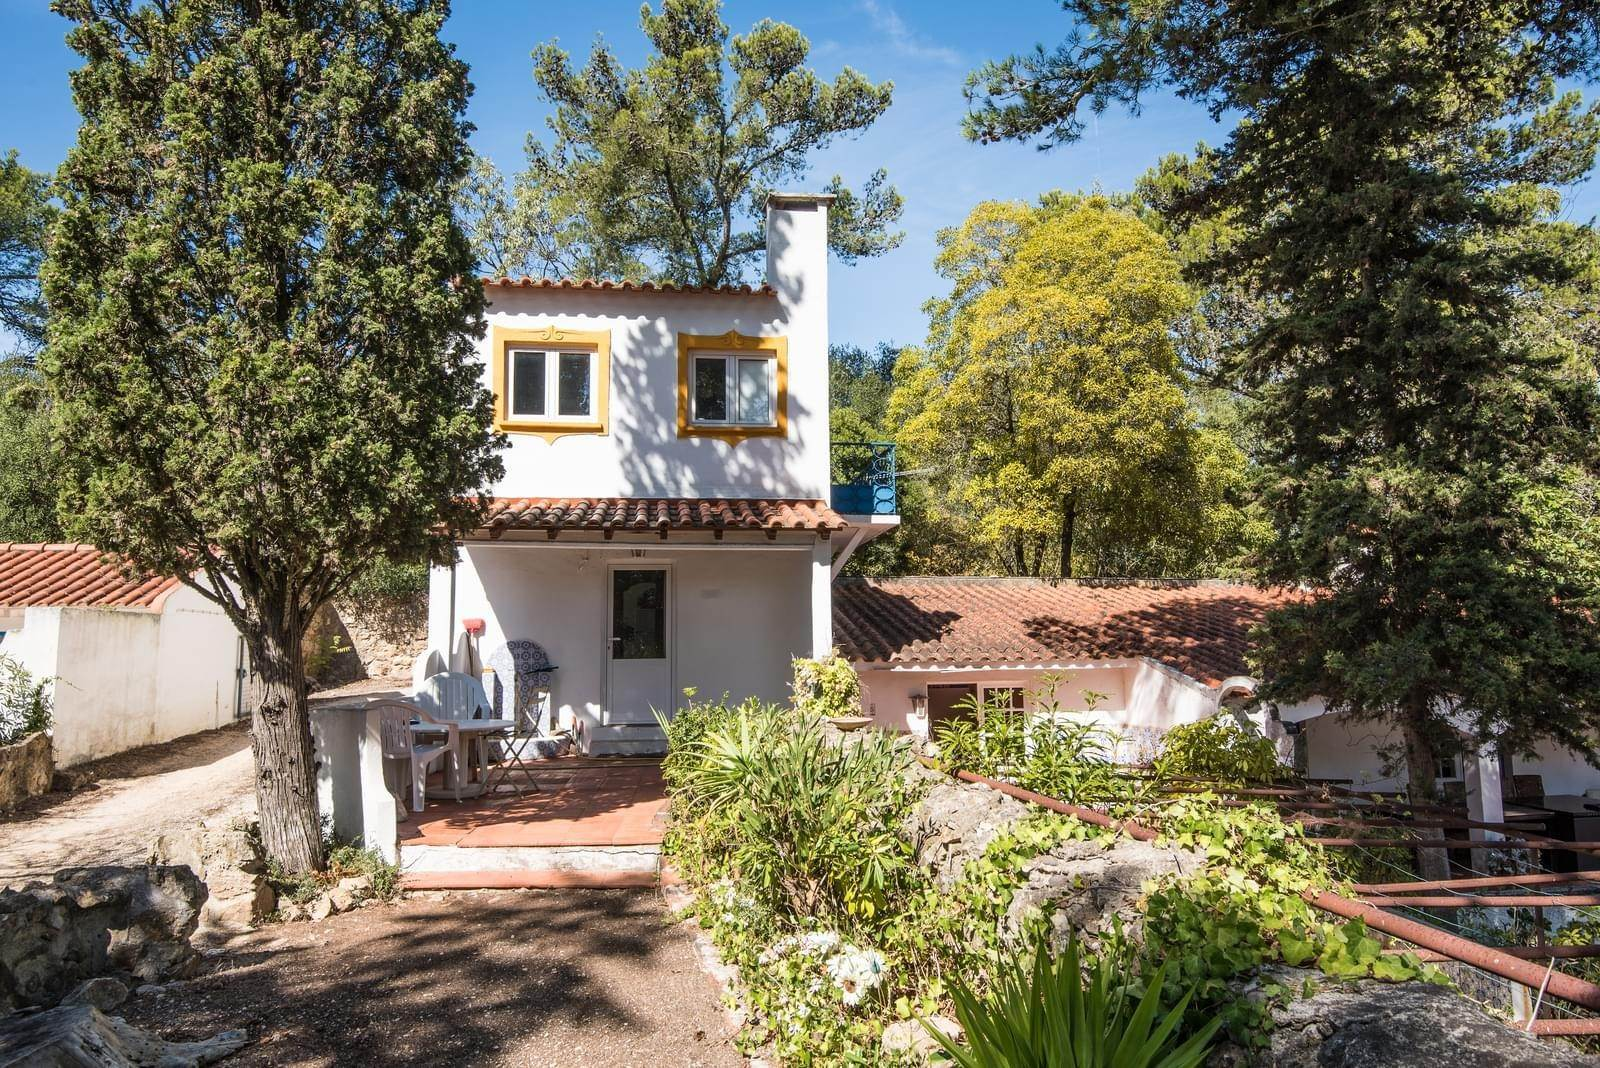 7. 別墅 / 联排别墅 為 出售 在 Unique property, located next to Quinta da Marinha, a quiet area.The property comprises six small villas, with deep refu... Cascais, 葡萄牙